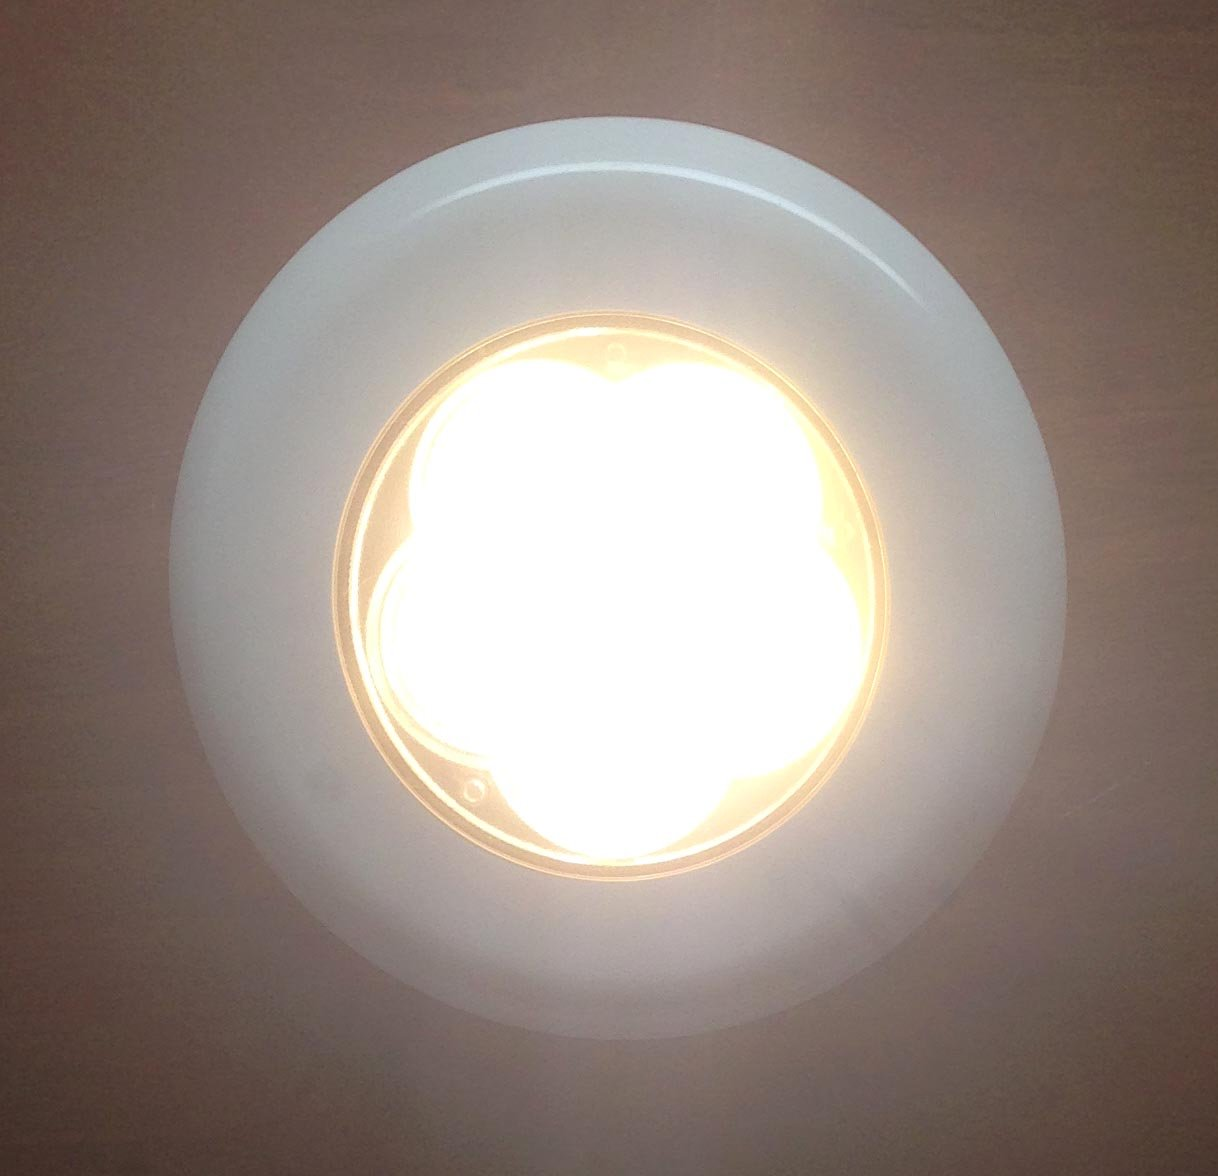 Pactrade Marine Boat 6 LED, Ceiling Courtesy Light Plastic Flush and Surface, Warm White